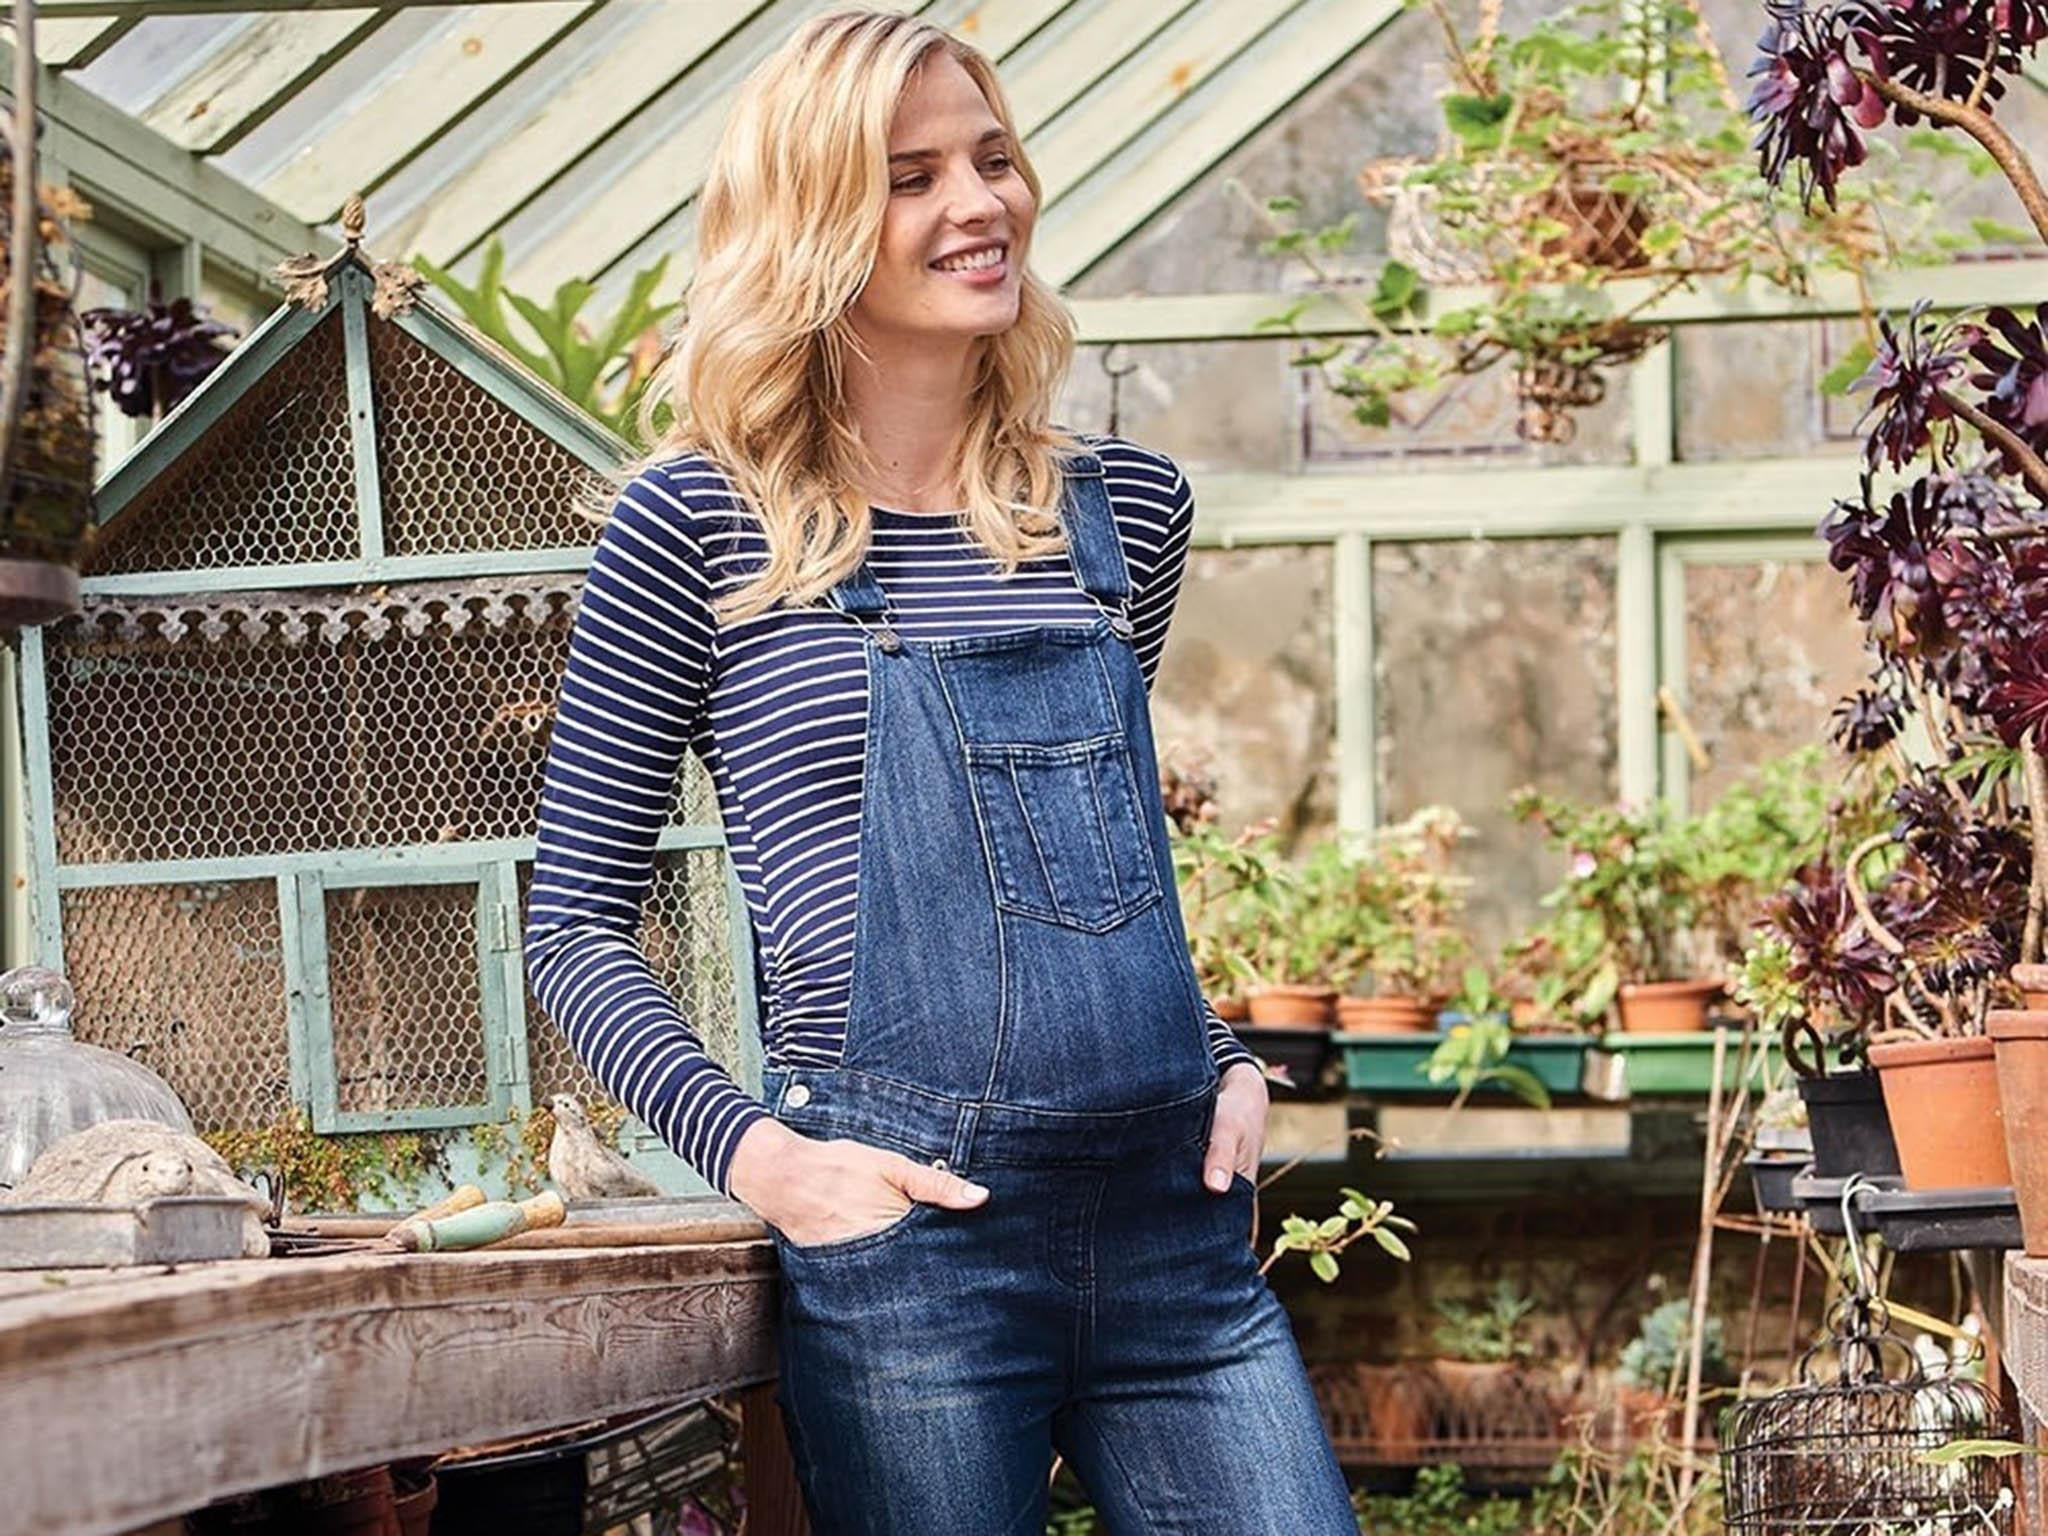 c20a98cf8d603 10 best maternity jeans | The Independent